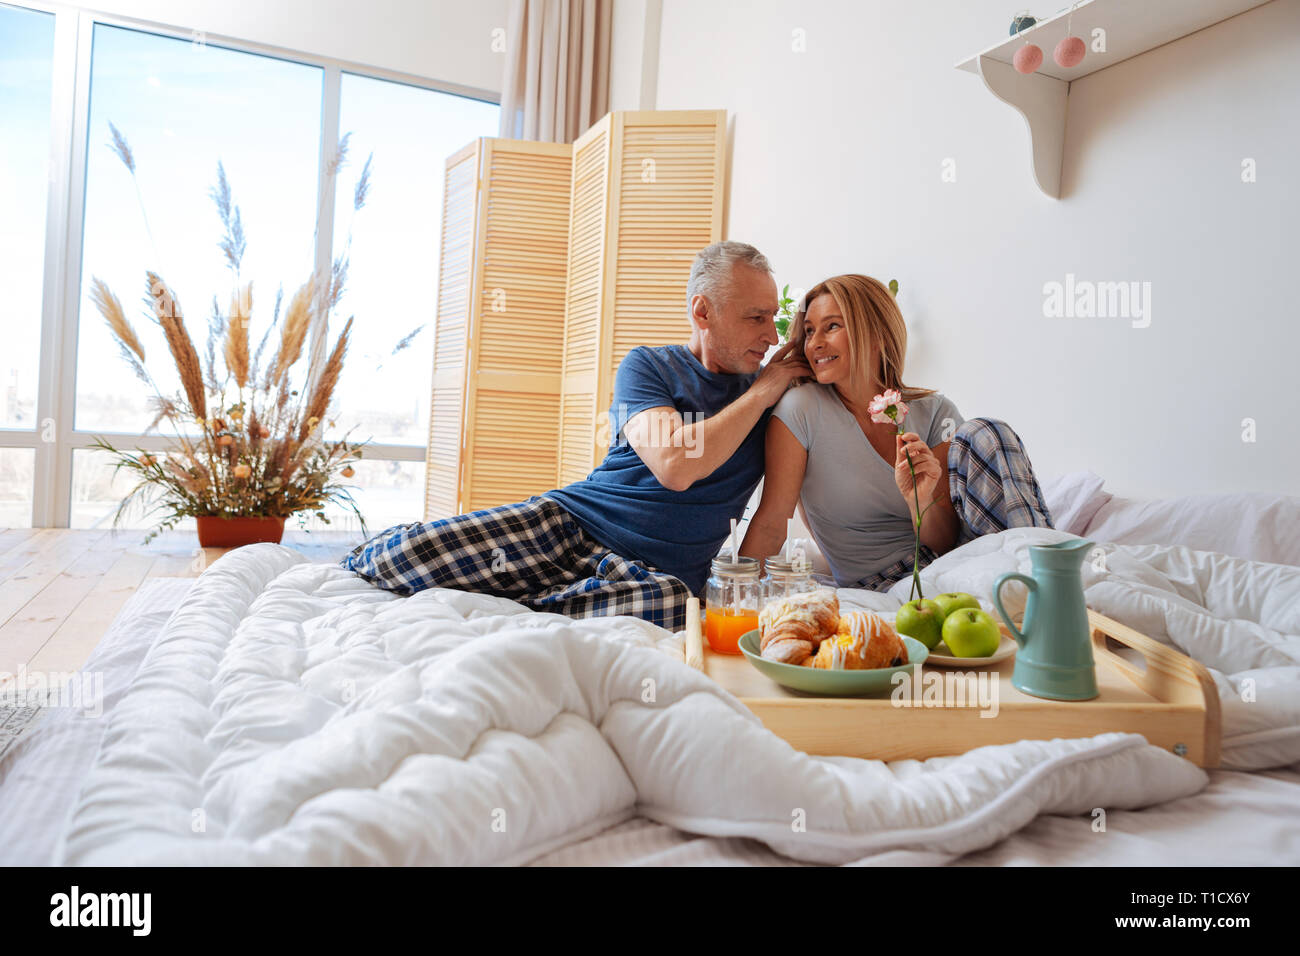 Wife feeling happy after receiving flower and breakfast in bed - Stock Image